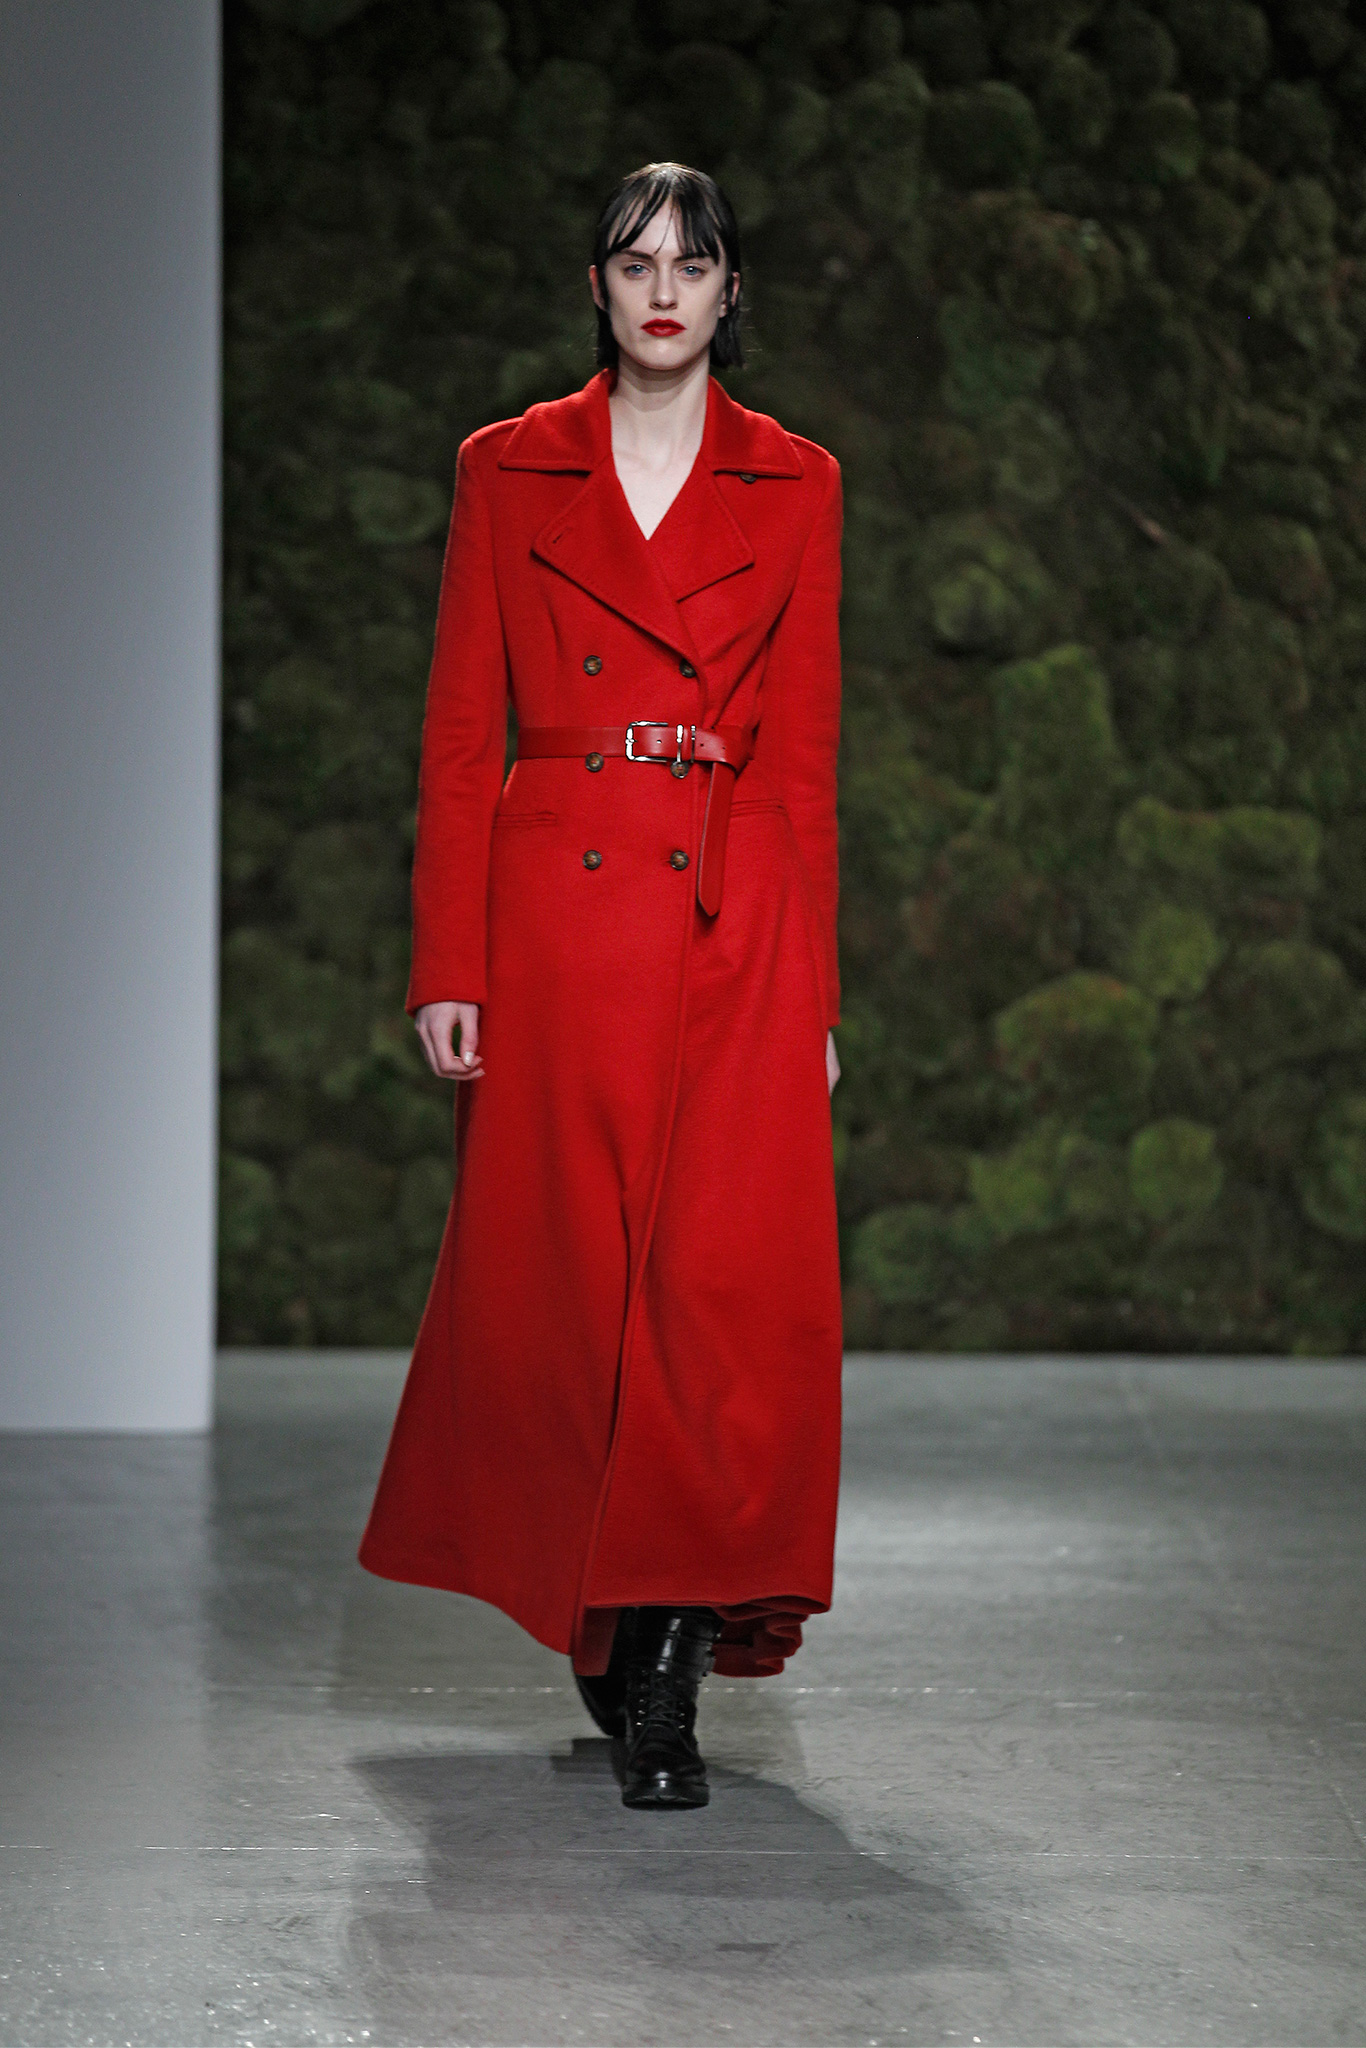 MAX MARA PRE FALL 2015 NEW YORK, 01/08/15